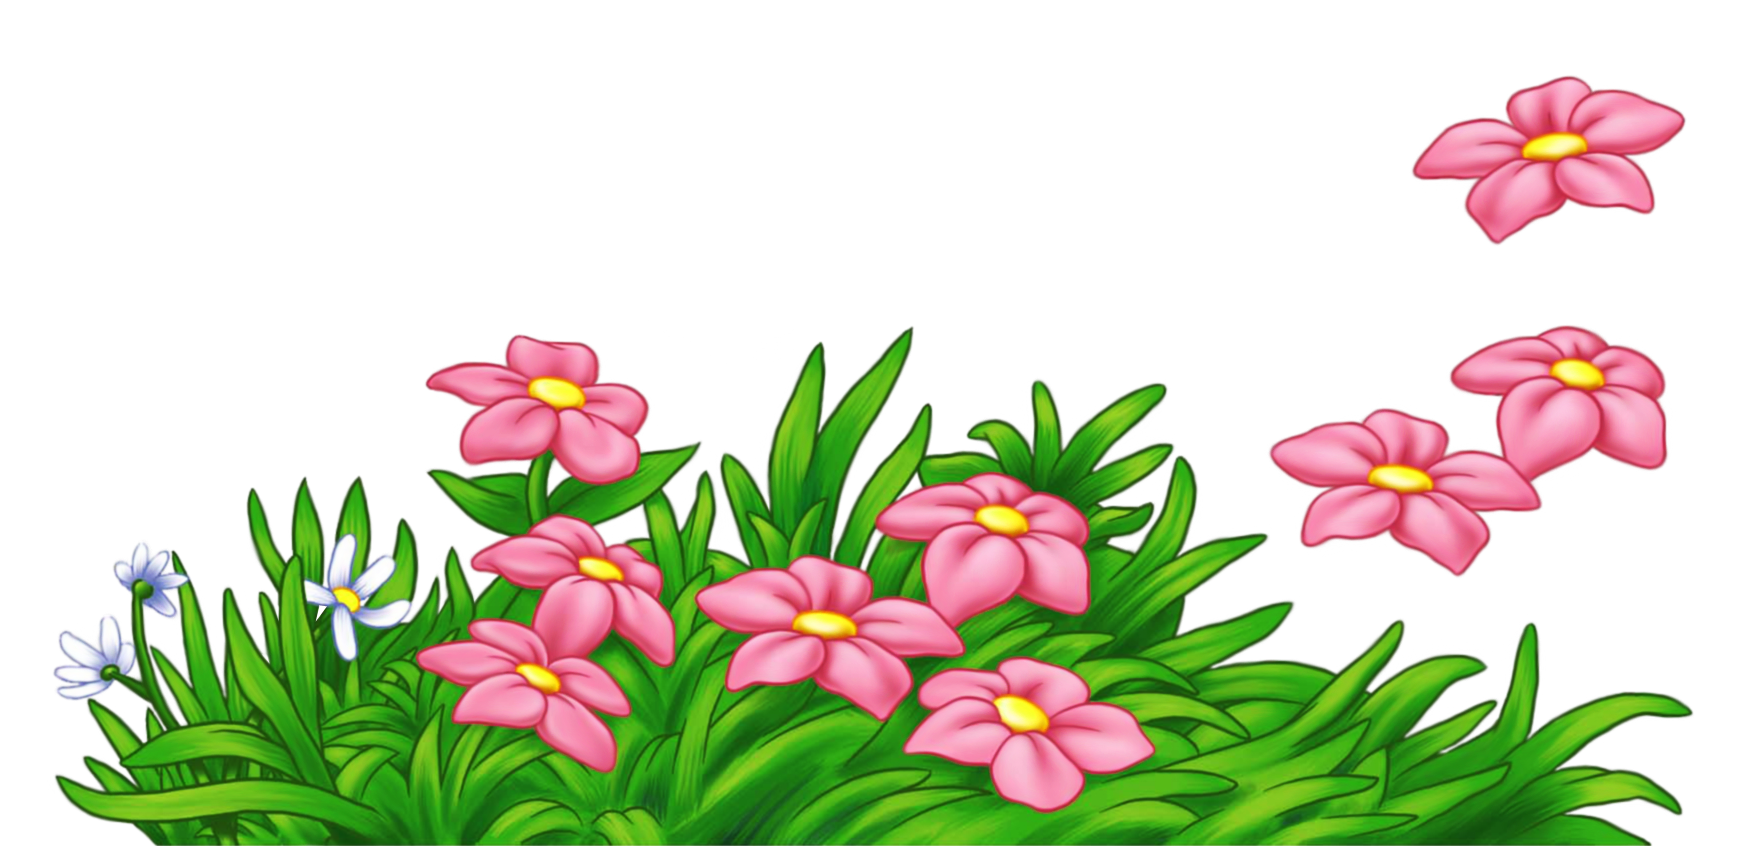 Flower and grass clipart clip free library Grass with Pink Flowers PNG Clipart | Clipart 2 | Pinterest ... clip free library